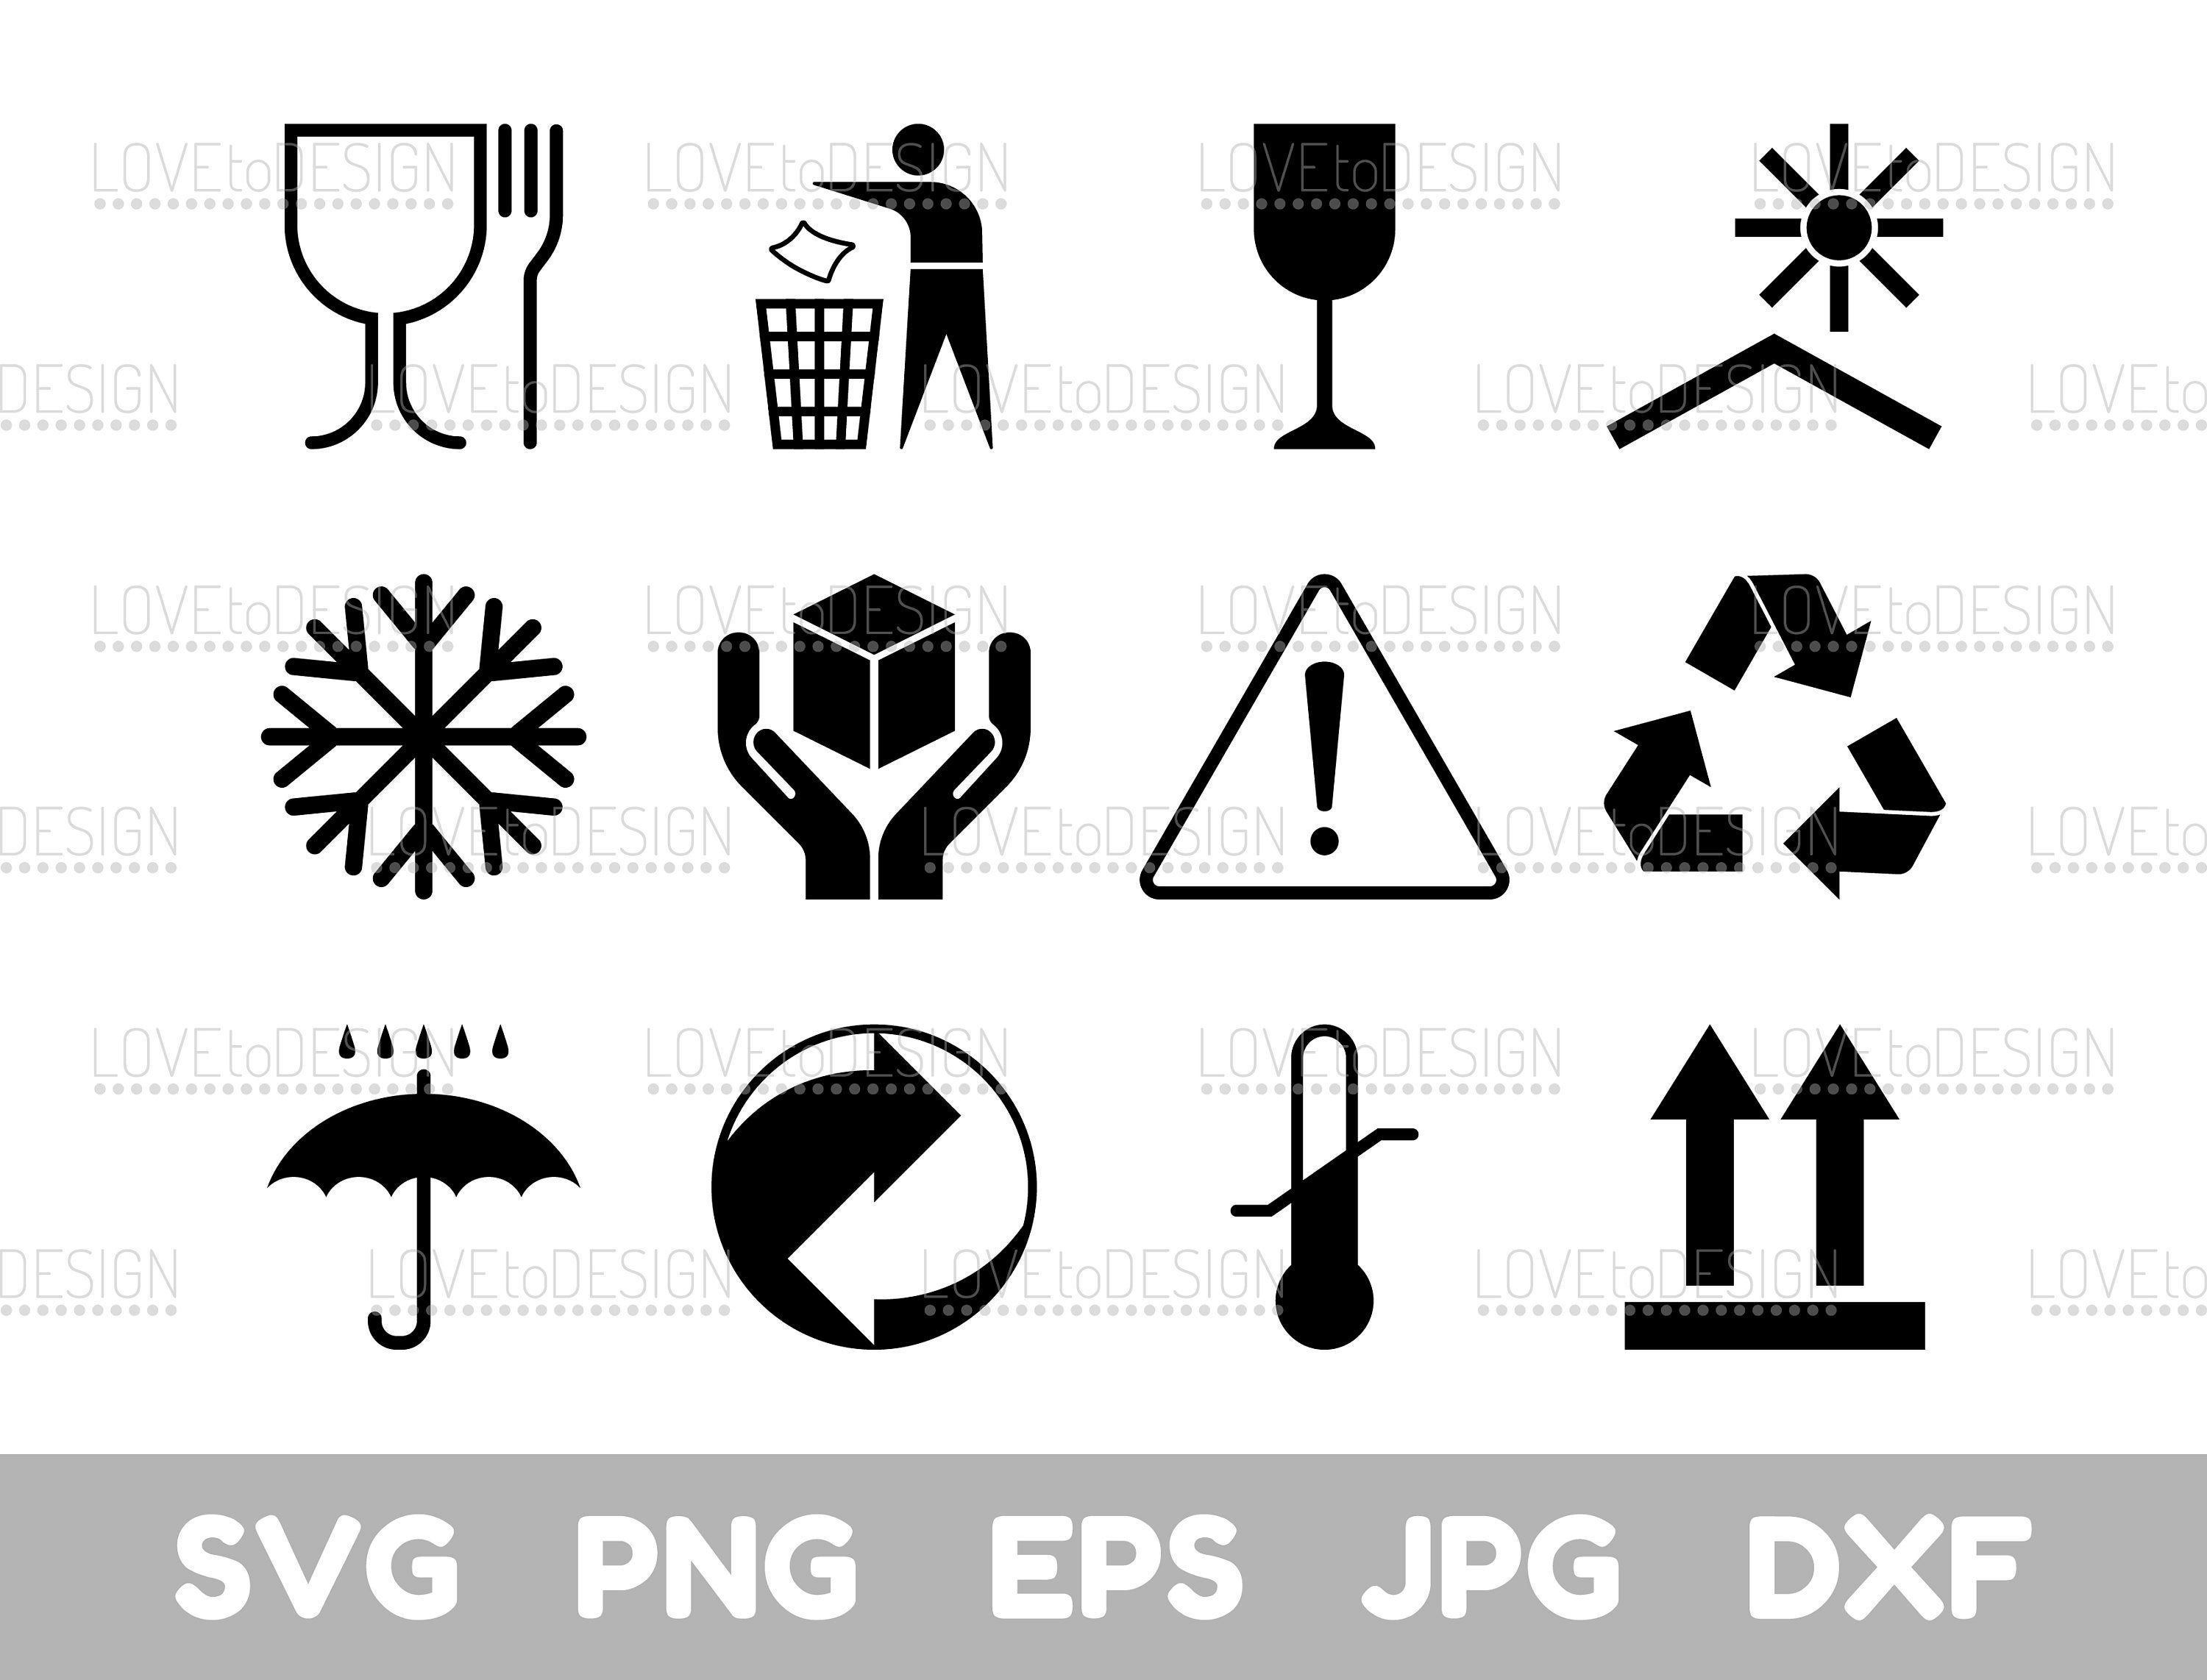 svg black and white library Post clipart svg. Symbols packaging